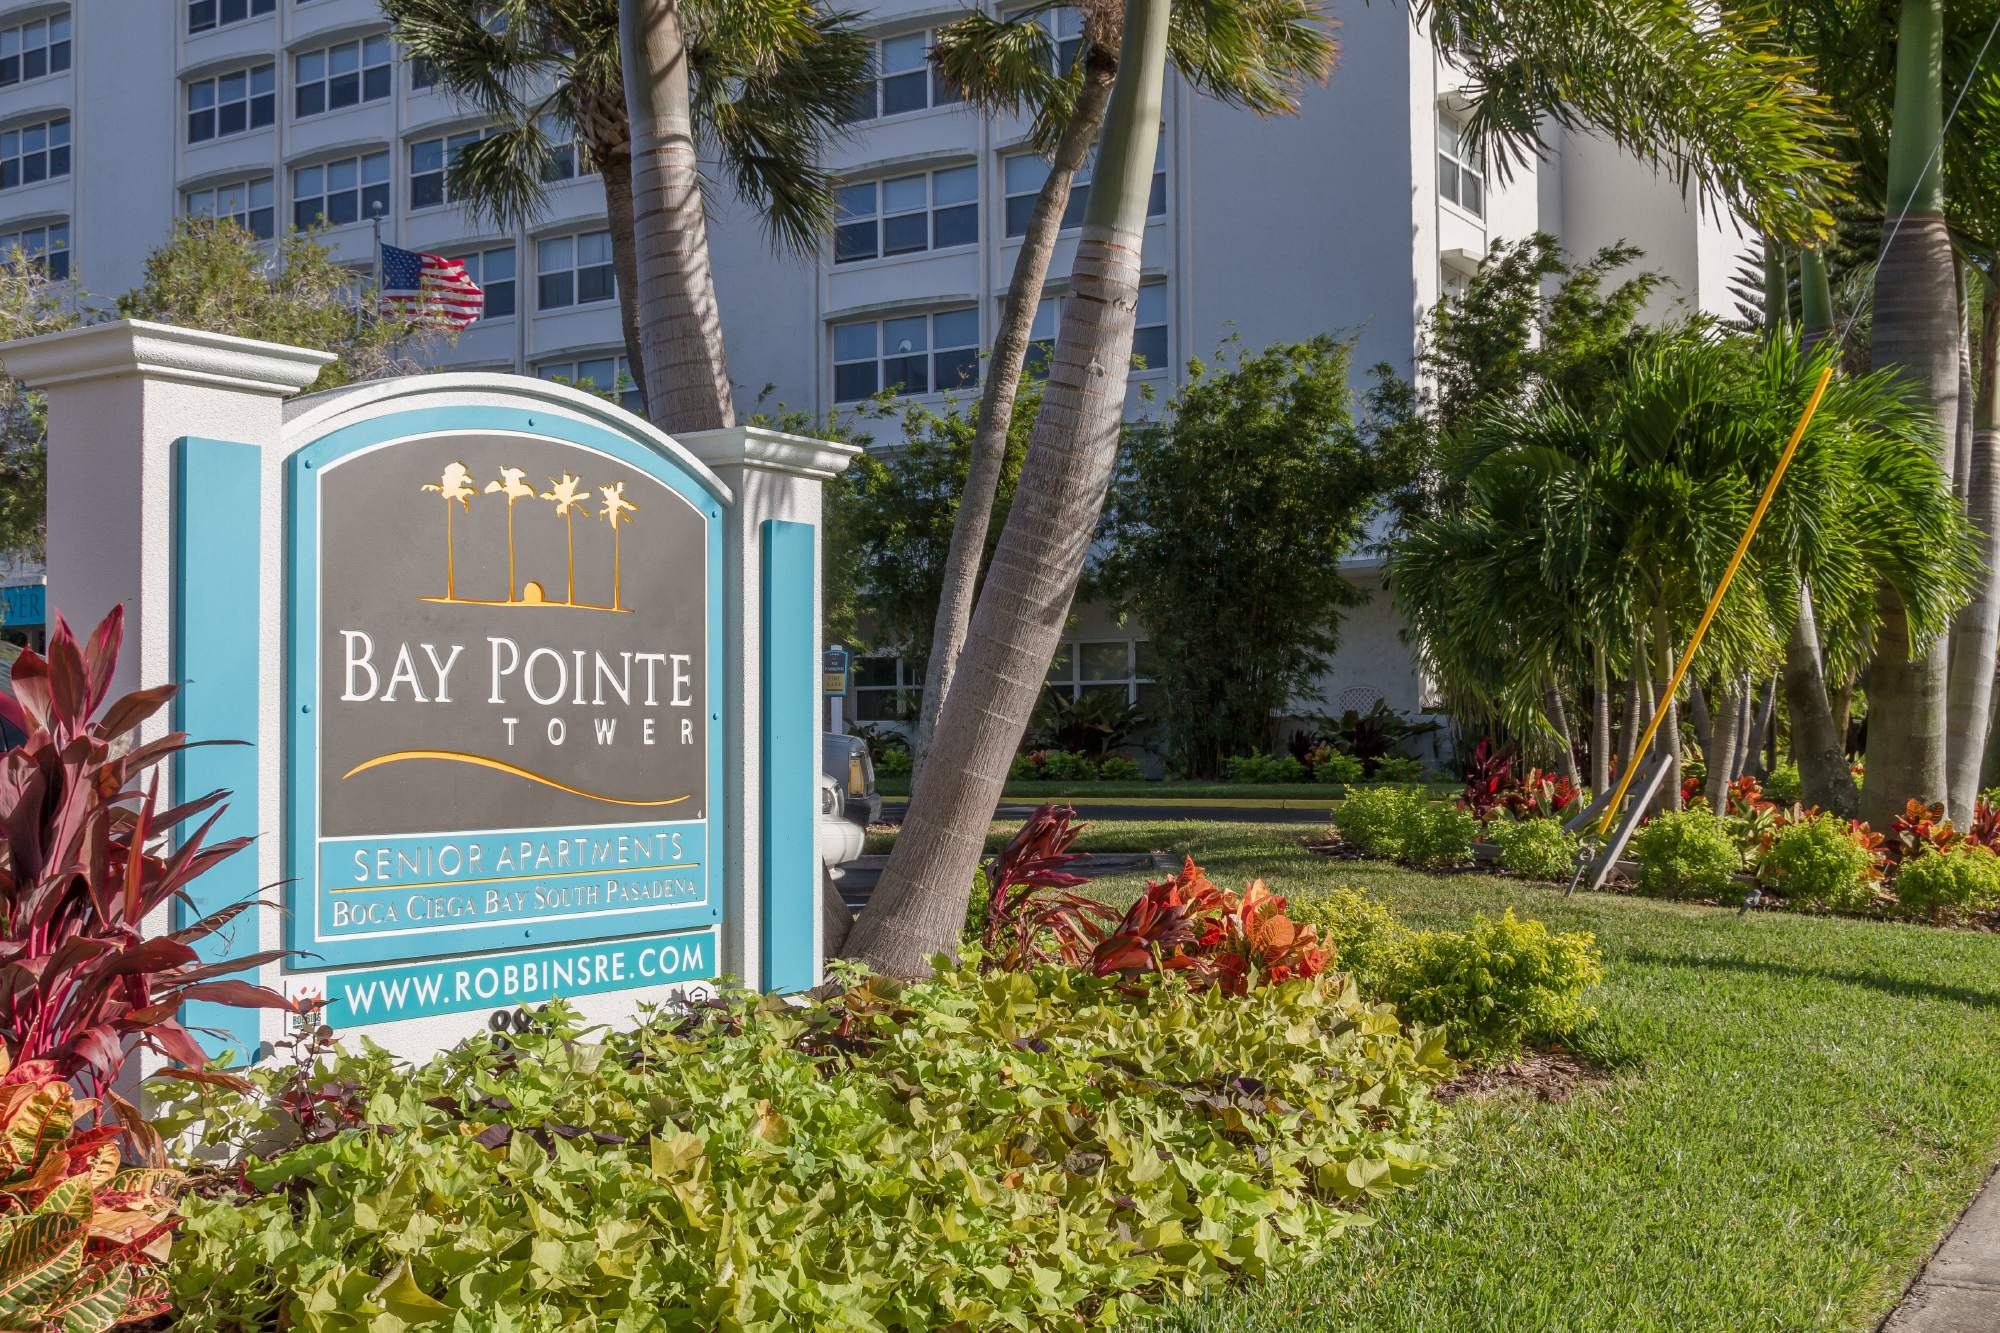 Image of Bay Pointe Tower